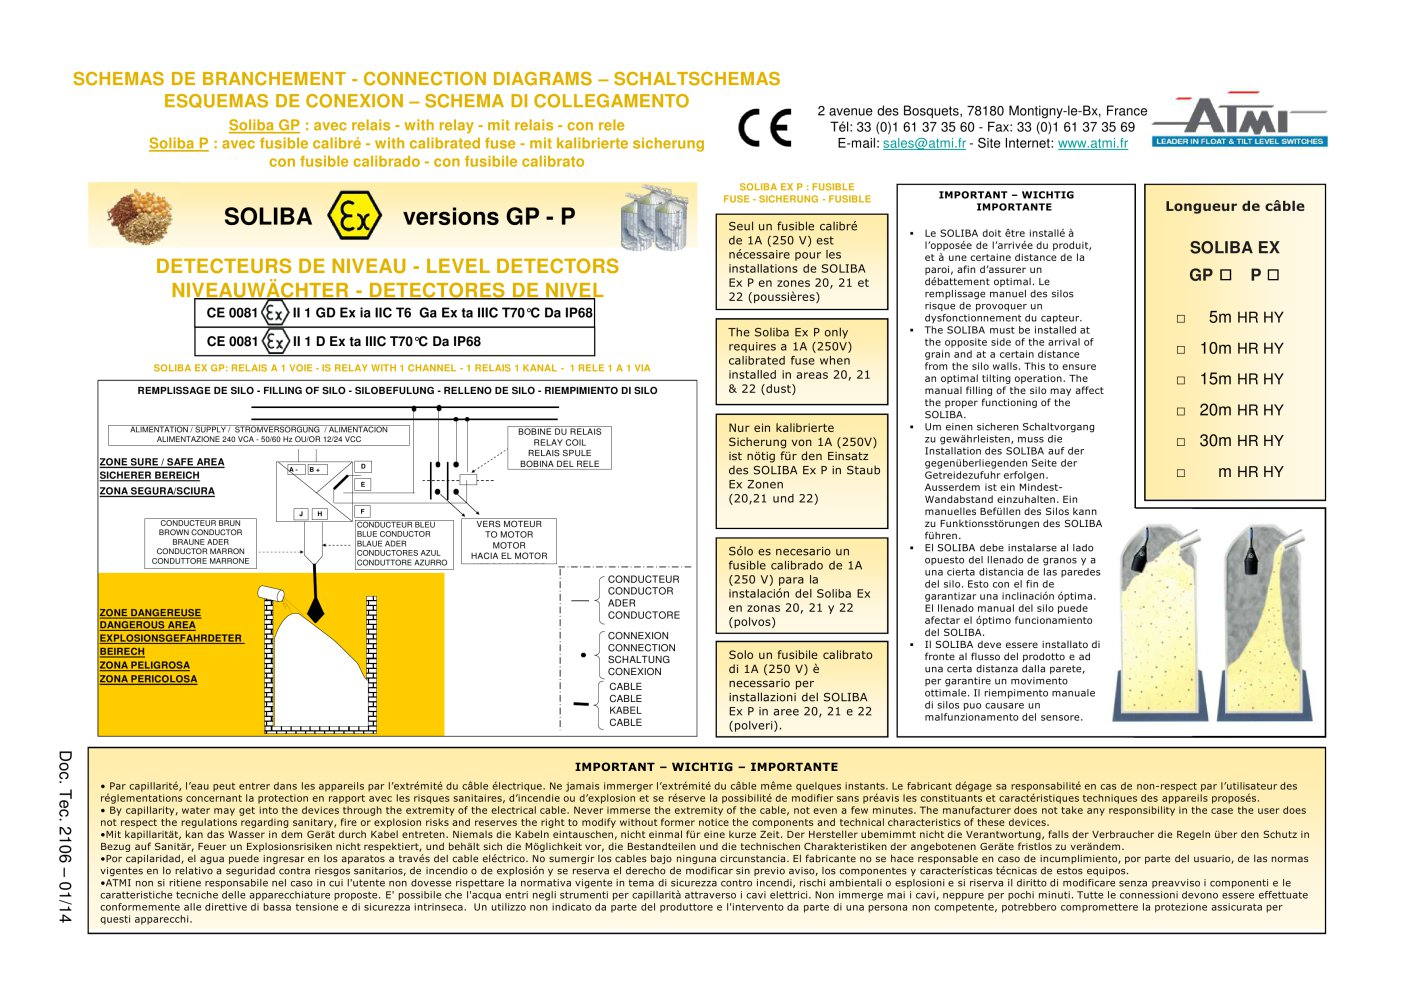 Wiring diagrams - SOLIBA Ex ATEX certificate - 1 / 2 Pages